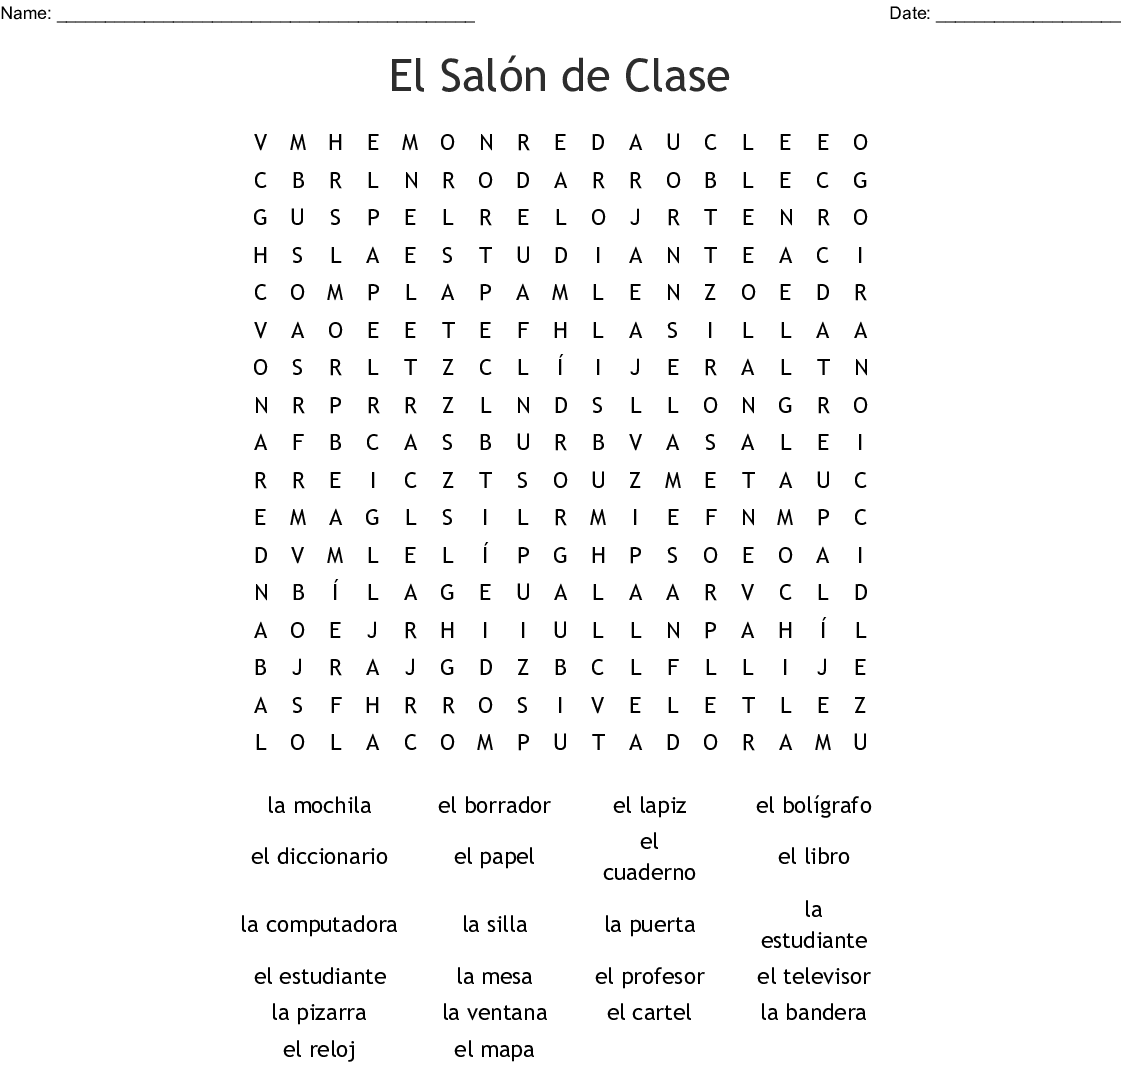 Spanish Classroom Words Word Search - WordMint